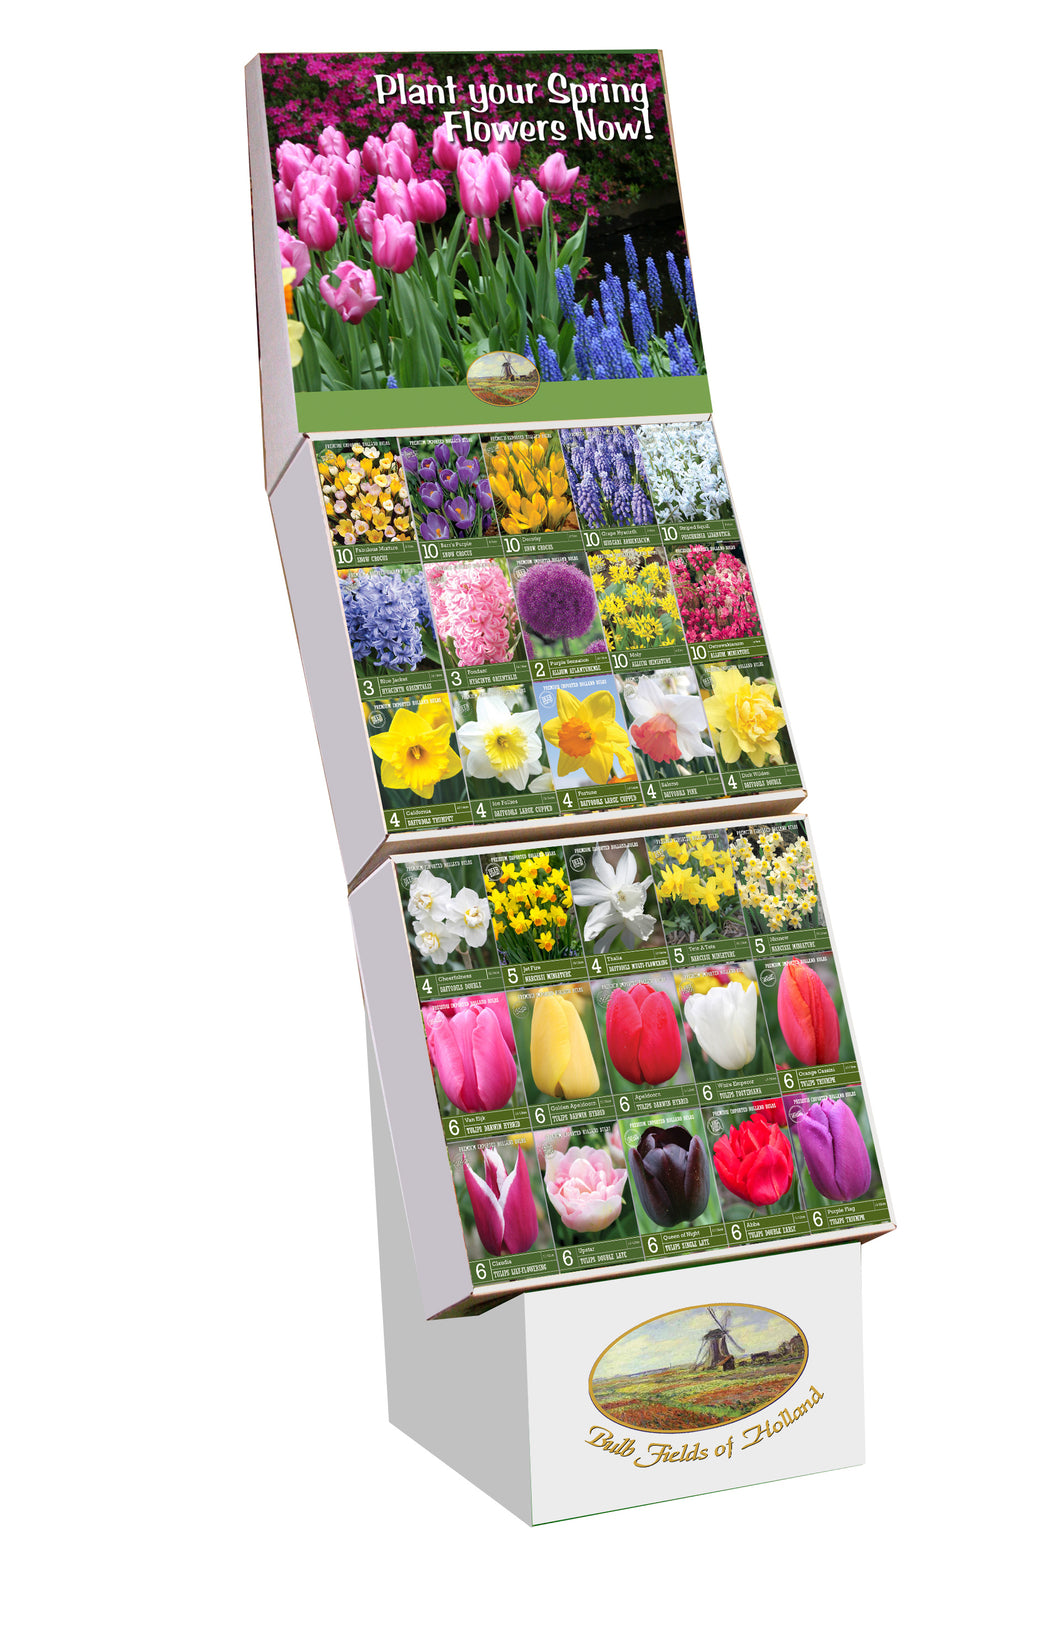 Bulb Fields of Holland Fall Bulb Display in Color Retail Impulse Boxes Unit #25100